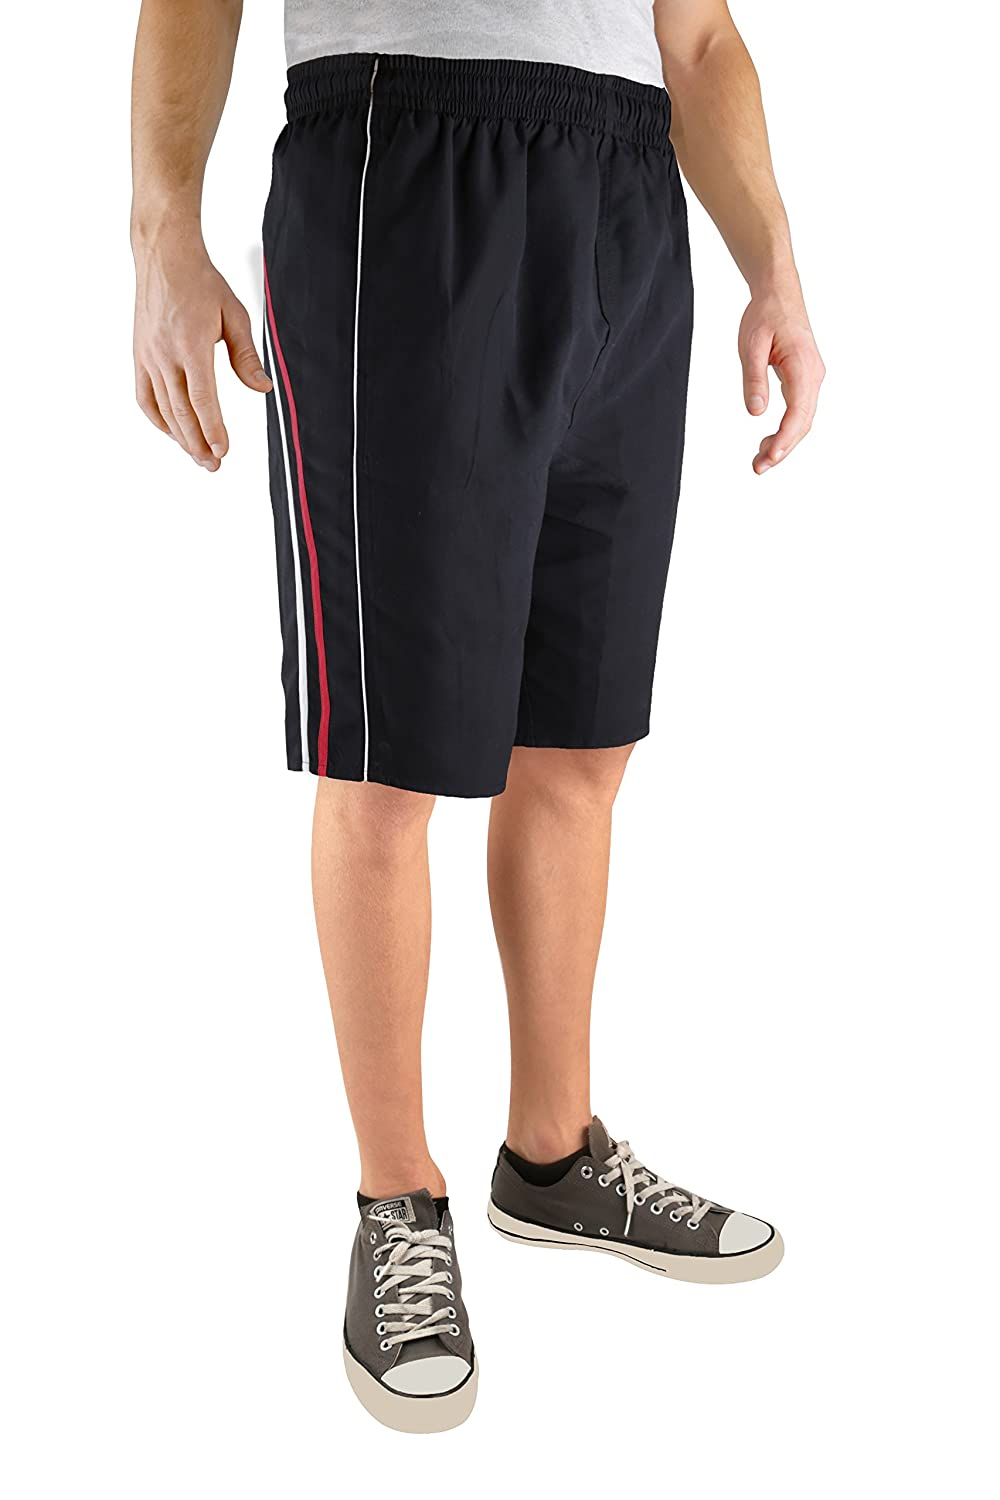 North 15 Men's Board Beach Swim Trunks Shorts with Pokcets-5105-Rd-Md